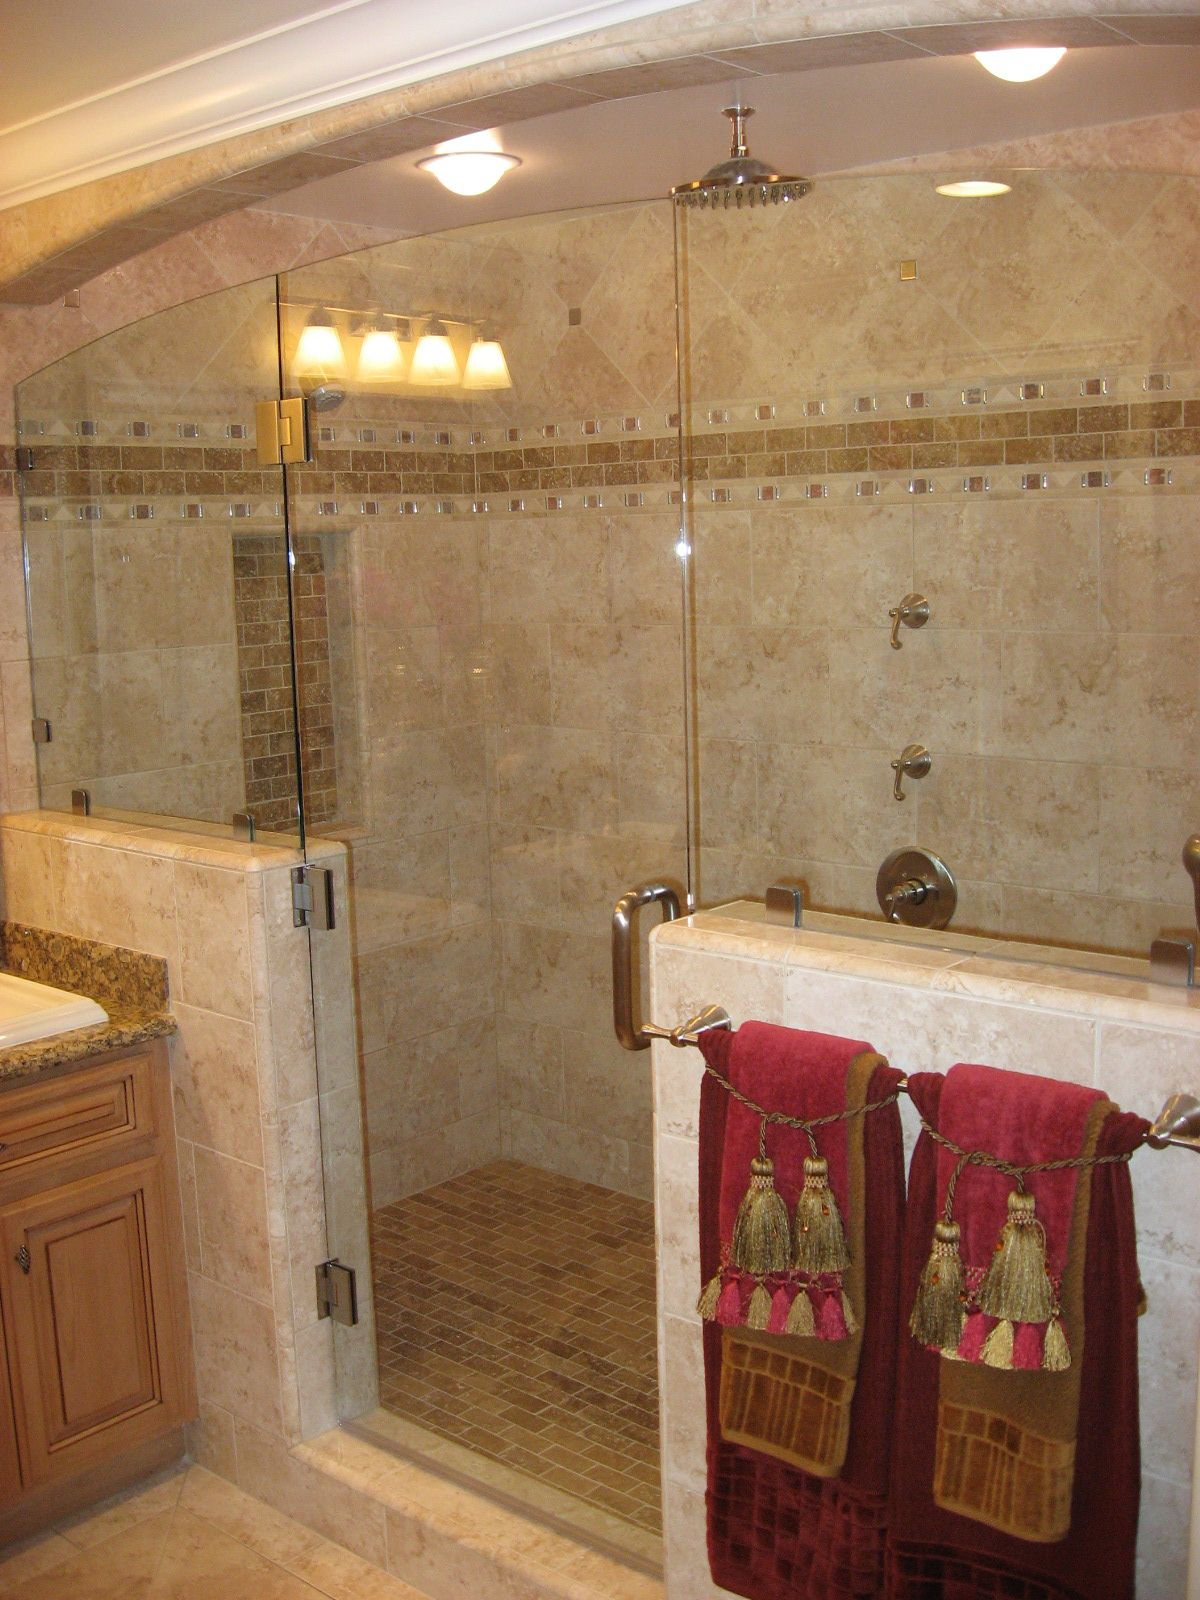 Bathroom Enclosures Ideas 25 Glass Shower Design Ideas And Bathroom Remodeling Inspirations